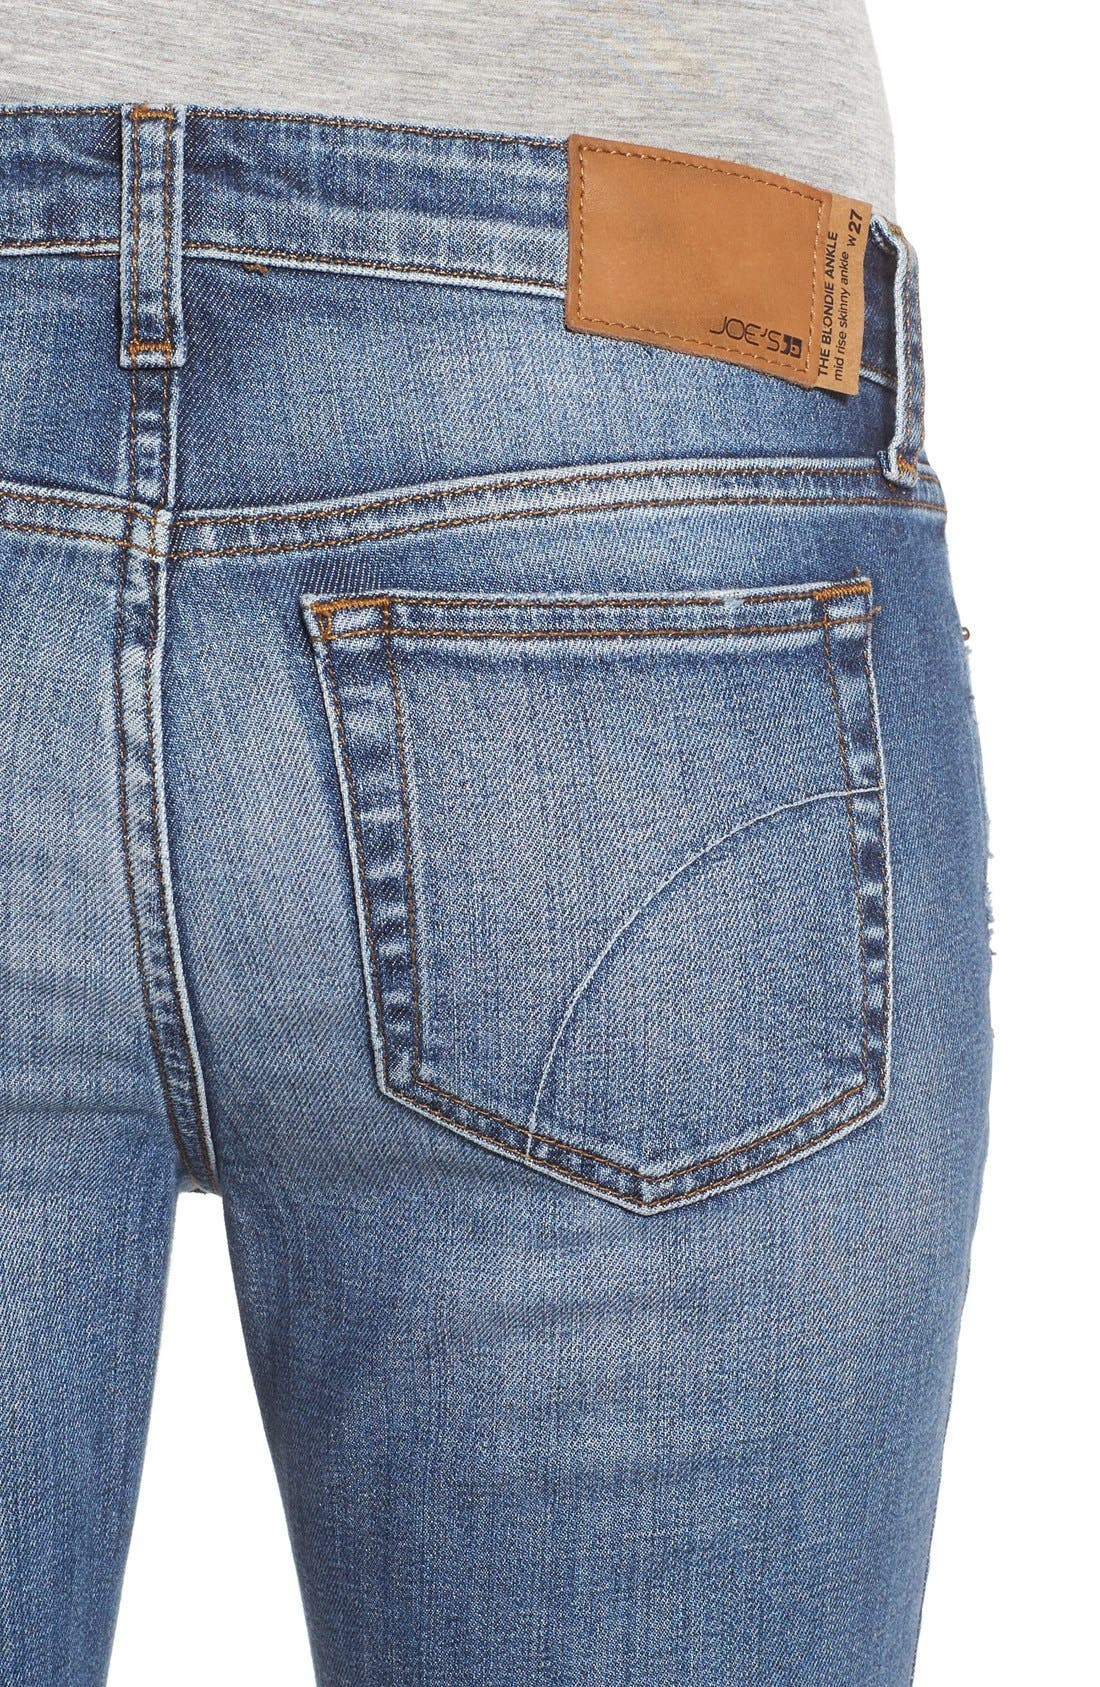 'Collector's - Blondie' Destroyed Ankle Skinny Jeans,                             Alternate thumbnail 3, color,                             410